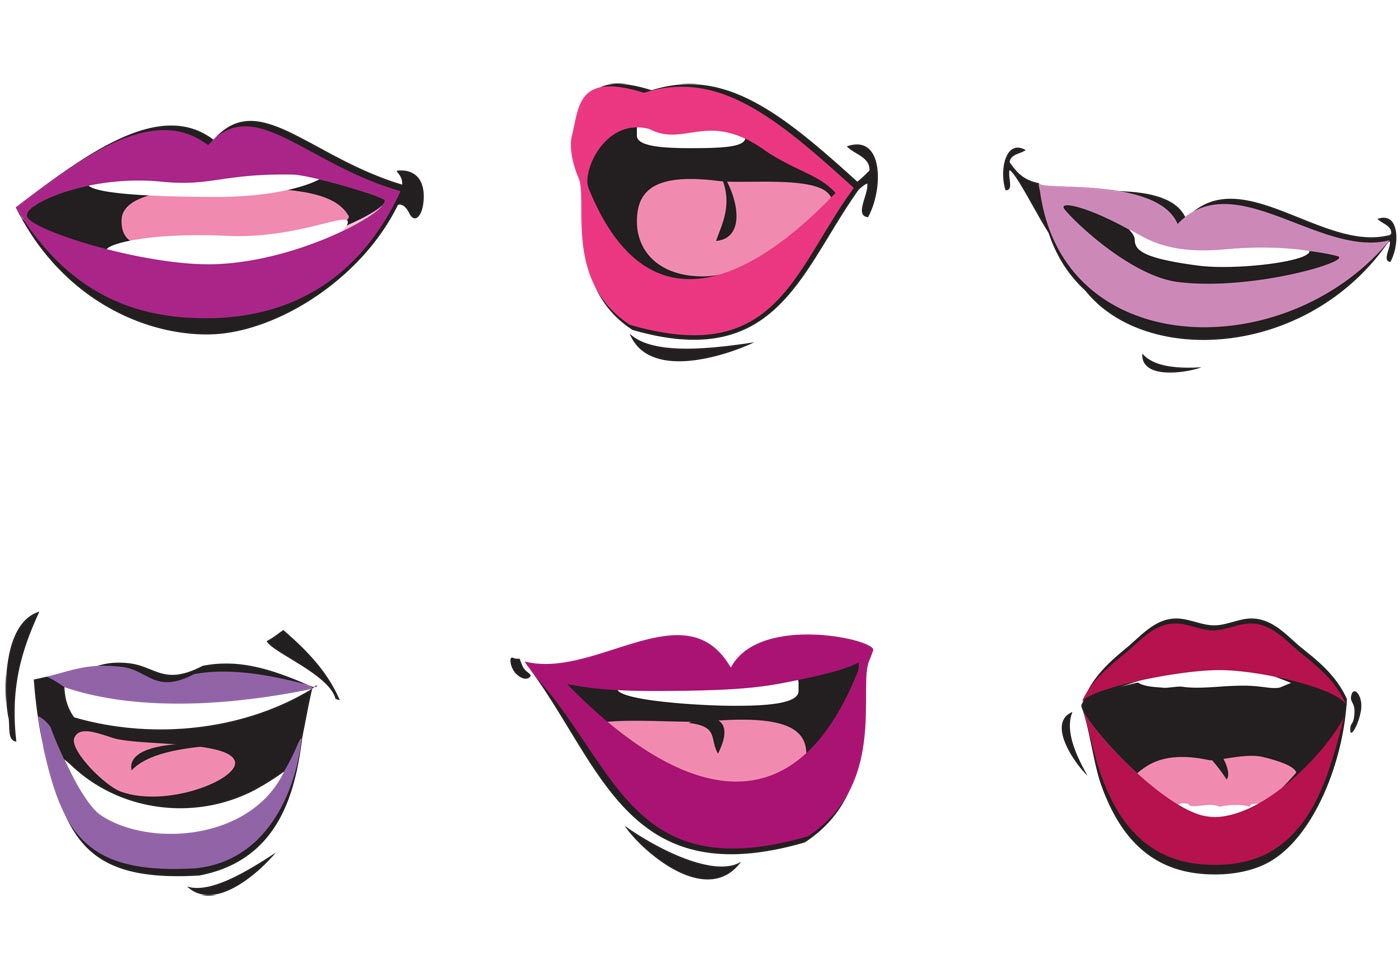 mouth free vector art 4944 free downloads rh vecteezy com Tongue Vector Cartoon Mouth Clip Art